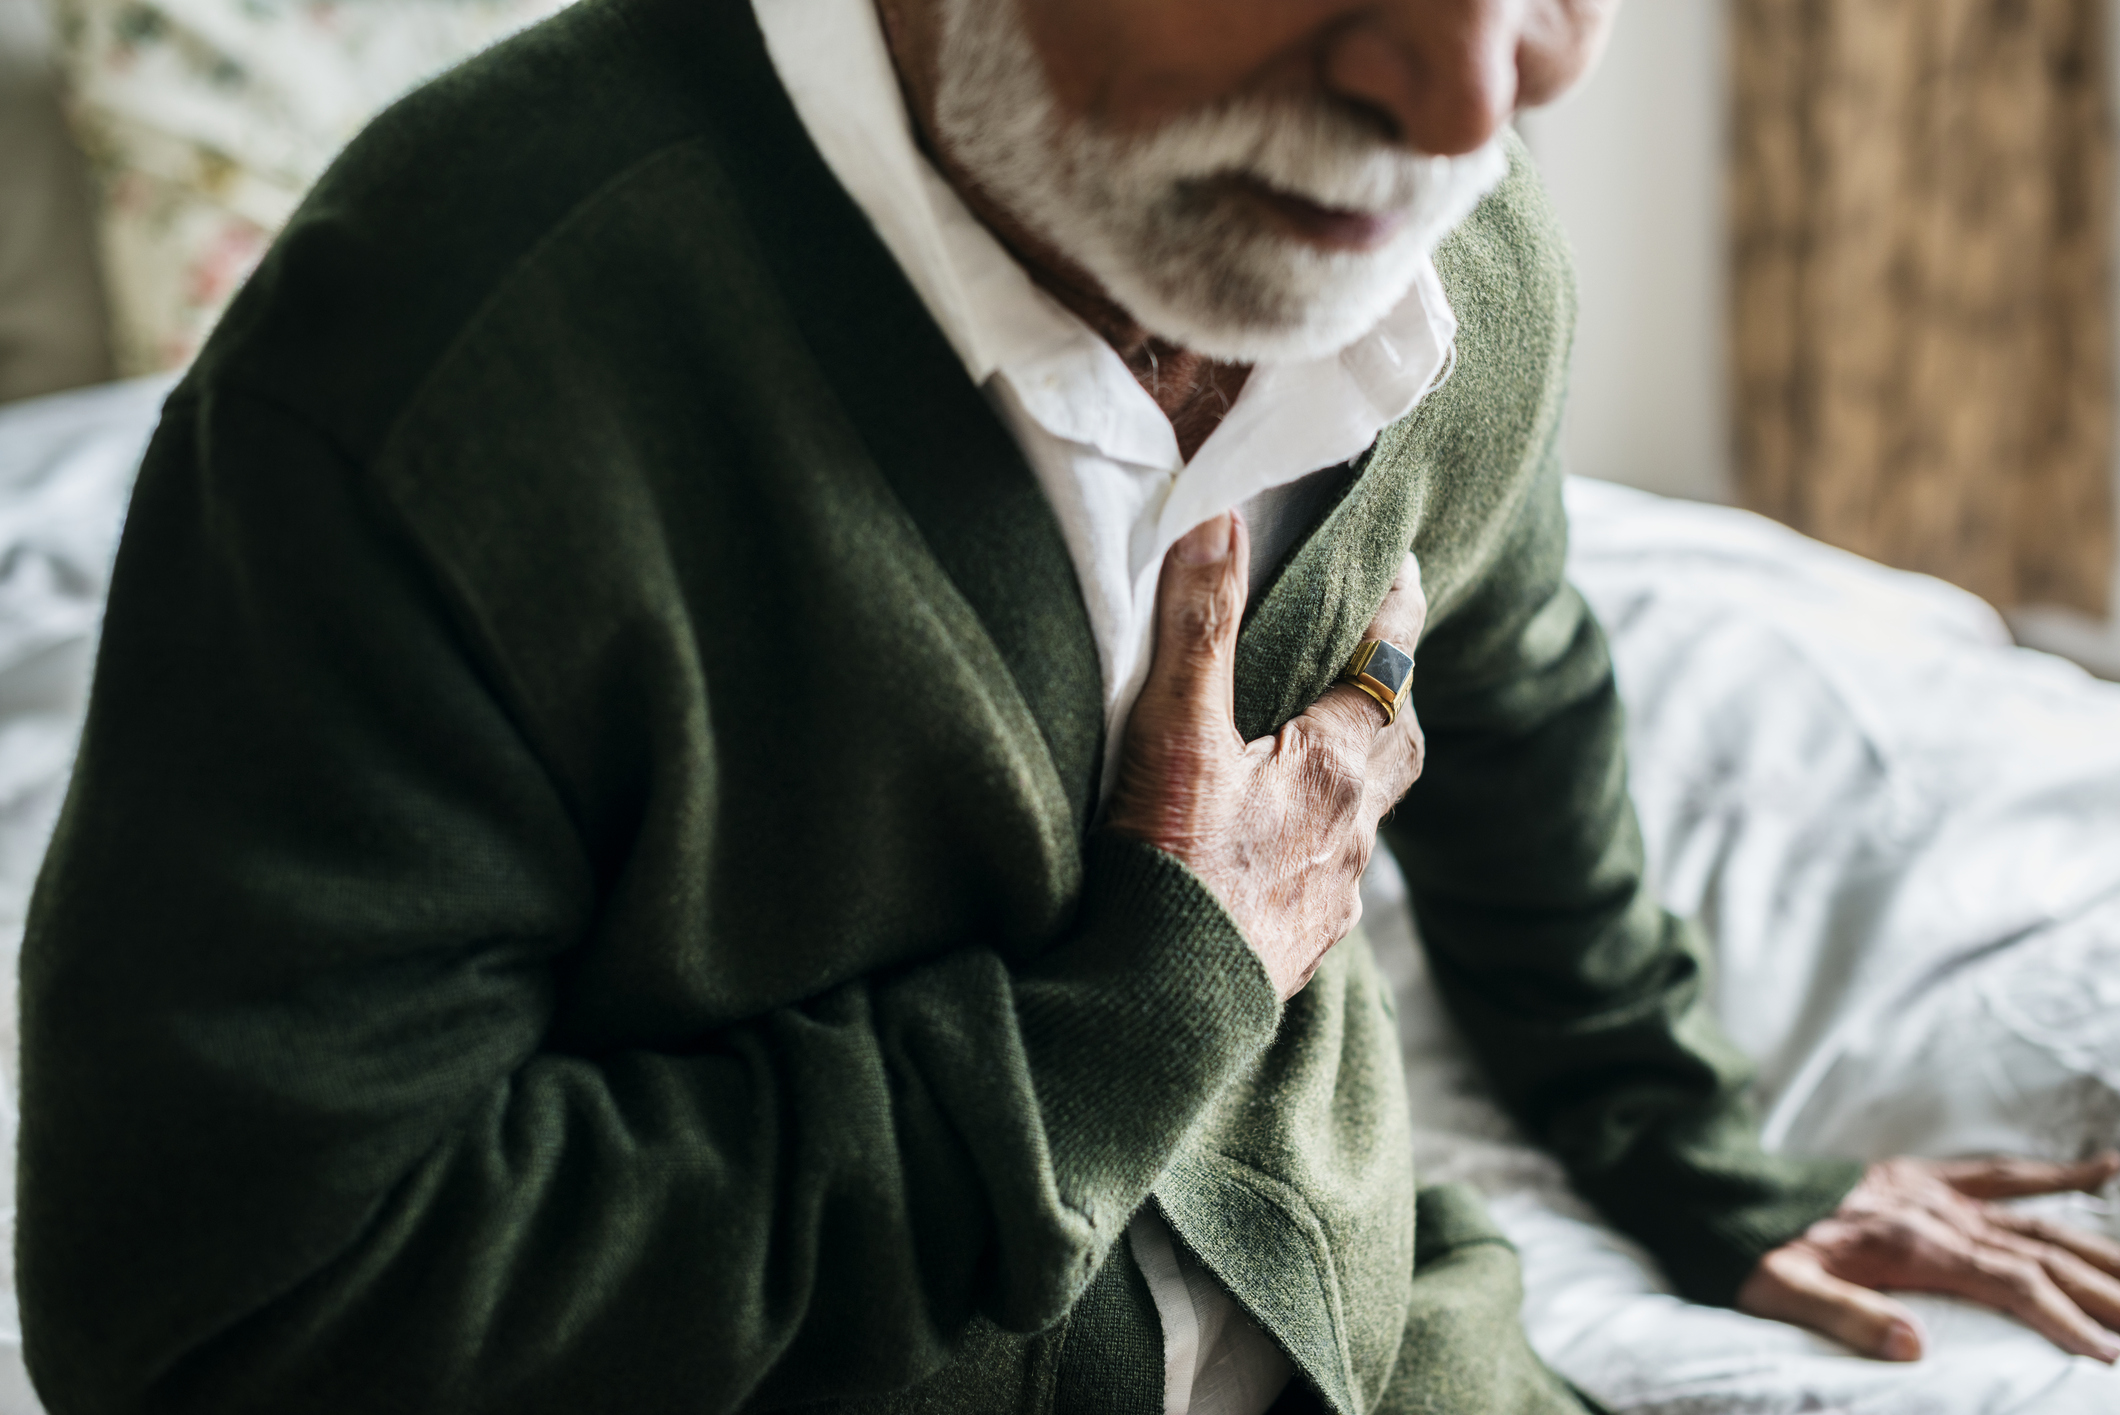 Elderly South Asian man clutching his chest in pain